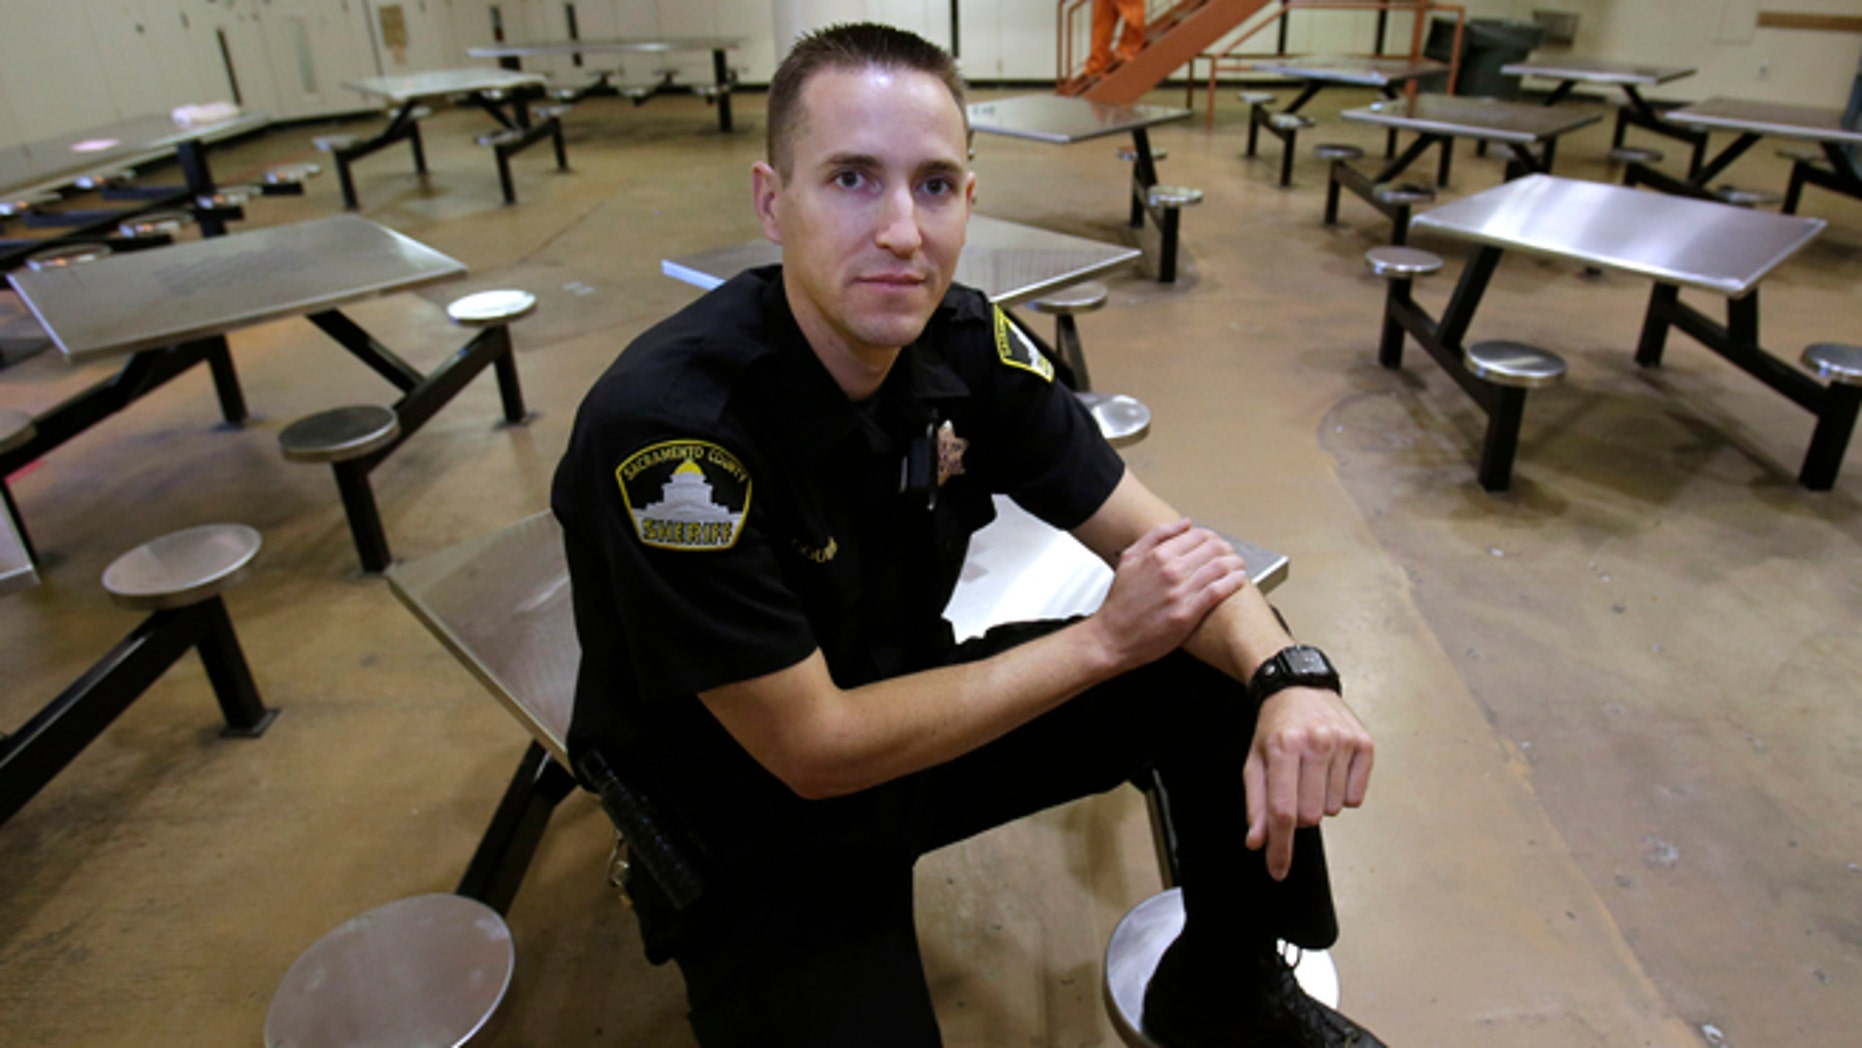 In this Wednesday, Aug. 14, 2013, photo, Sacramento County Deputy Sheriff Kenny Gouveia poses in the housing unit where he was attacked and injured while trying to settle a dispute between two inmates at the Sacramento County Jail.  Gouveia was off work for five days while he recovered from the injuries sustained when a 26-year-old inmate attacked him, slamming his head into a food cart and choking him.  County jails across California have seen a marked increase in violence since they began housing thousands of offenders who previously would have gone to state prisons.